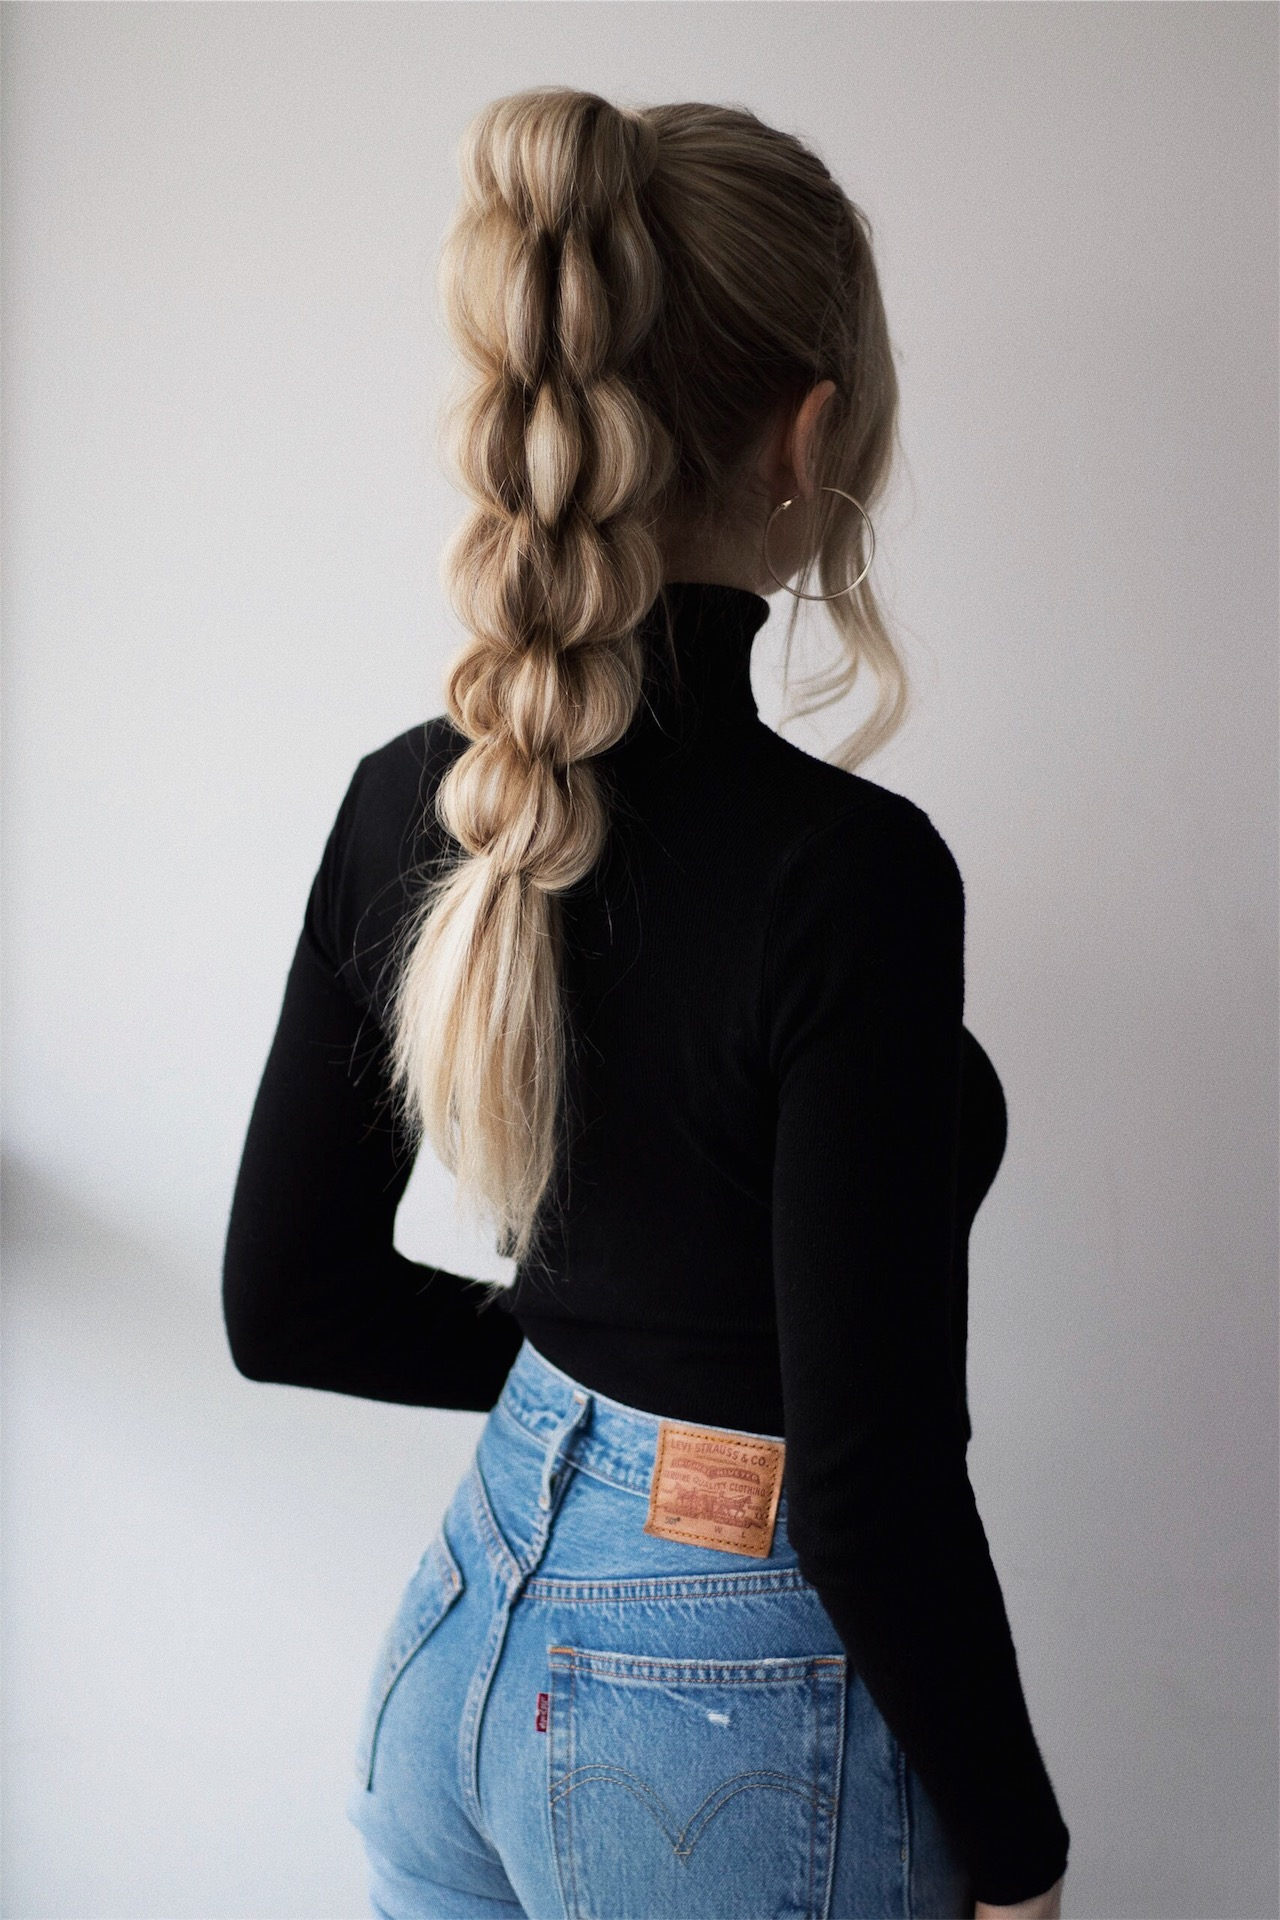 BRAIDED PONYTAIL HAIRSTYLE | www.alexgaboury.com